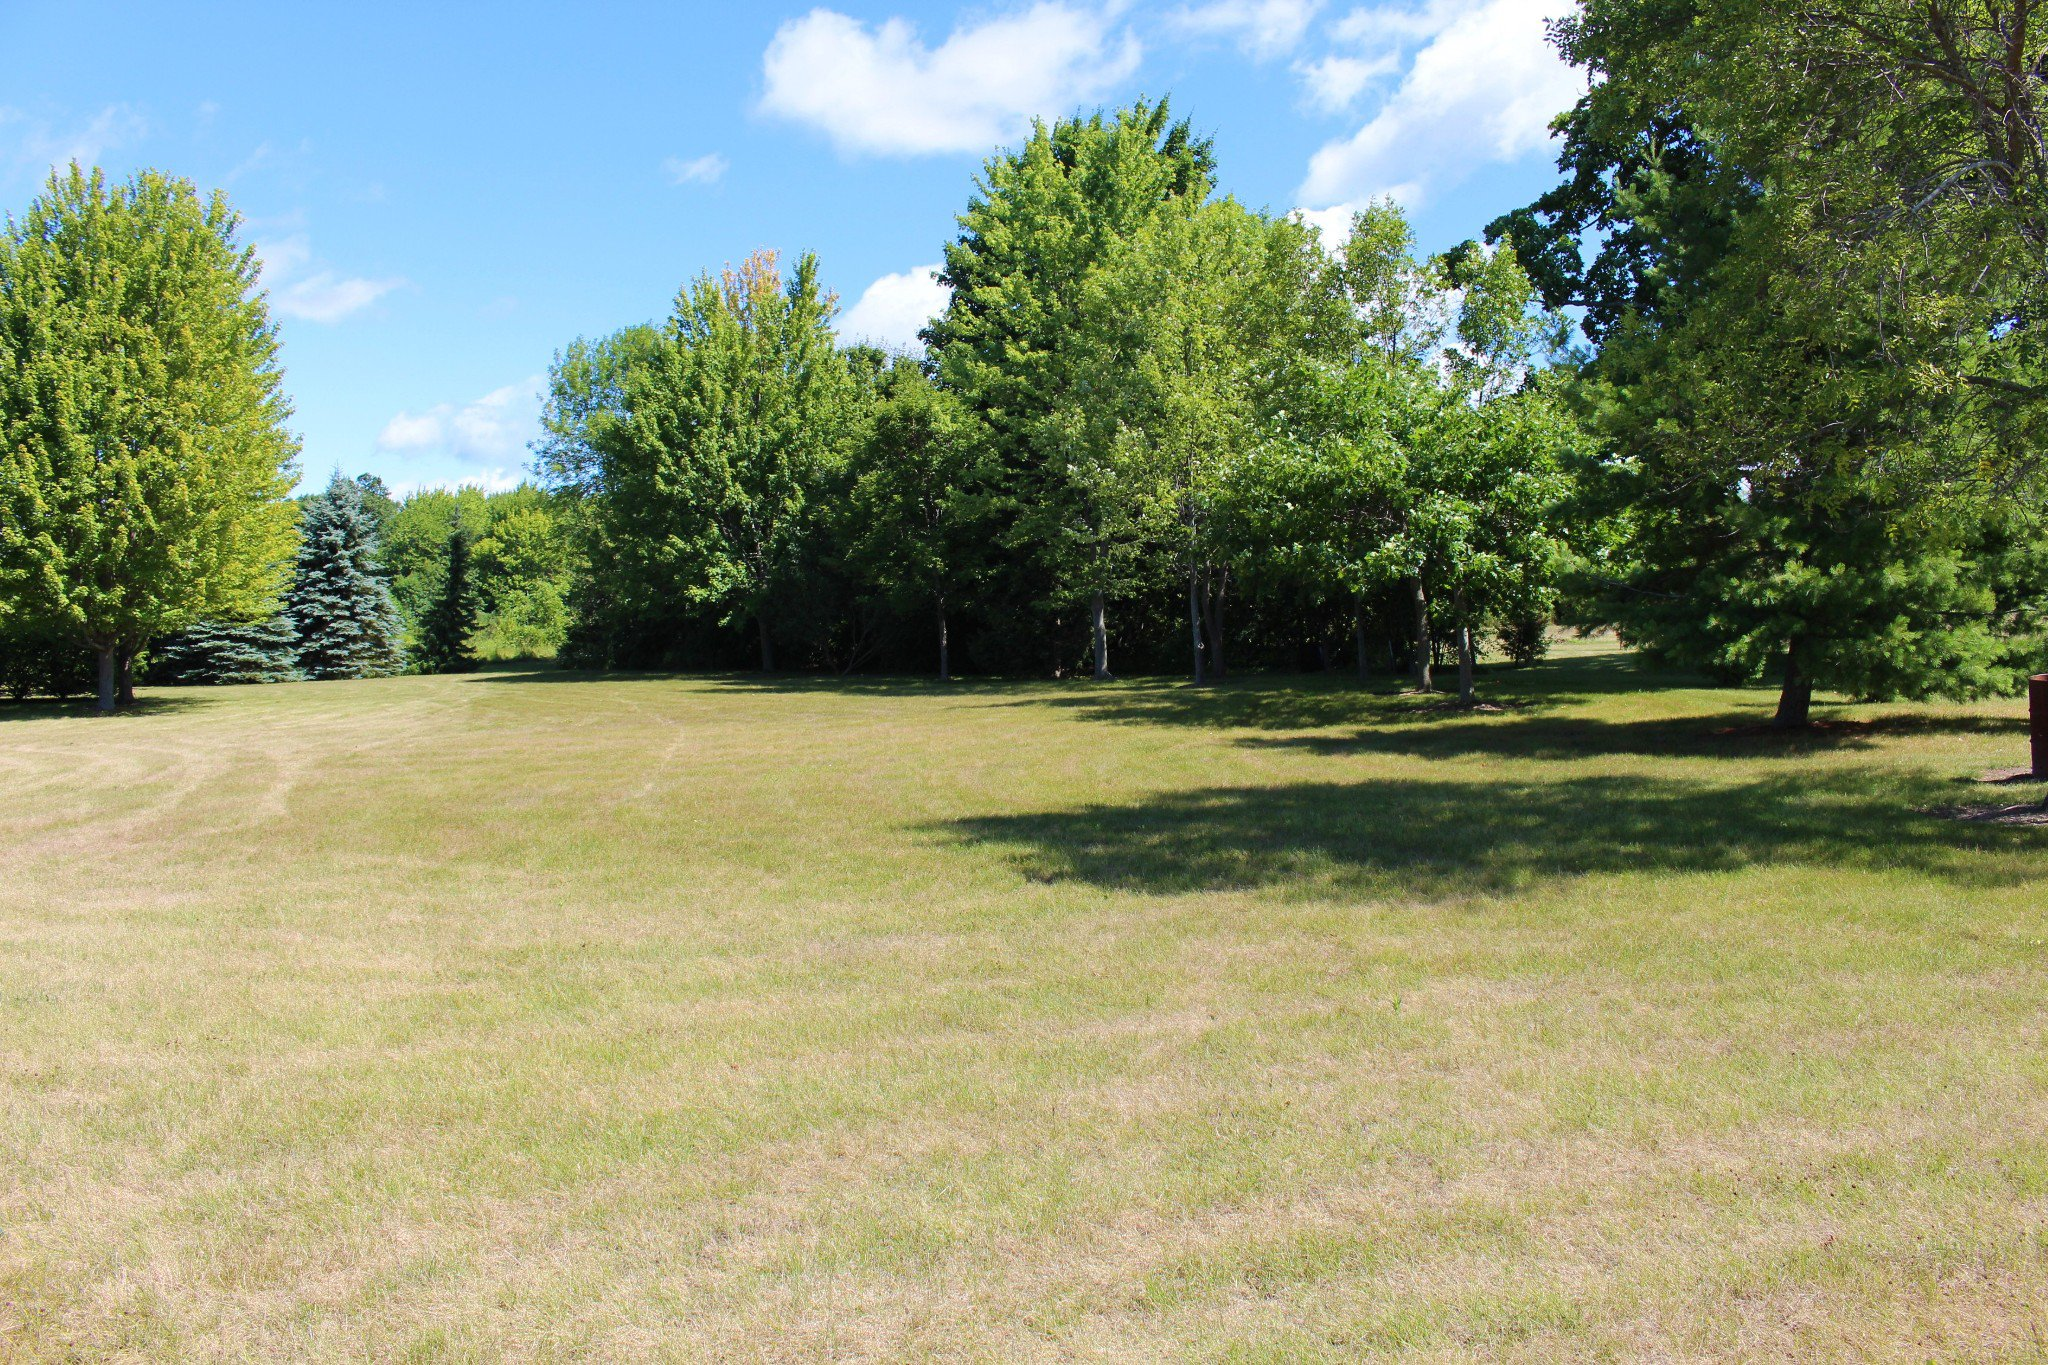 Photo 45: Photos: 159 Nawautin Drive in Grafton: Residential Detached for sale : MLS®# 40012652